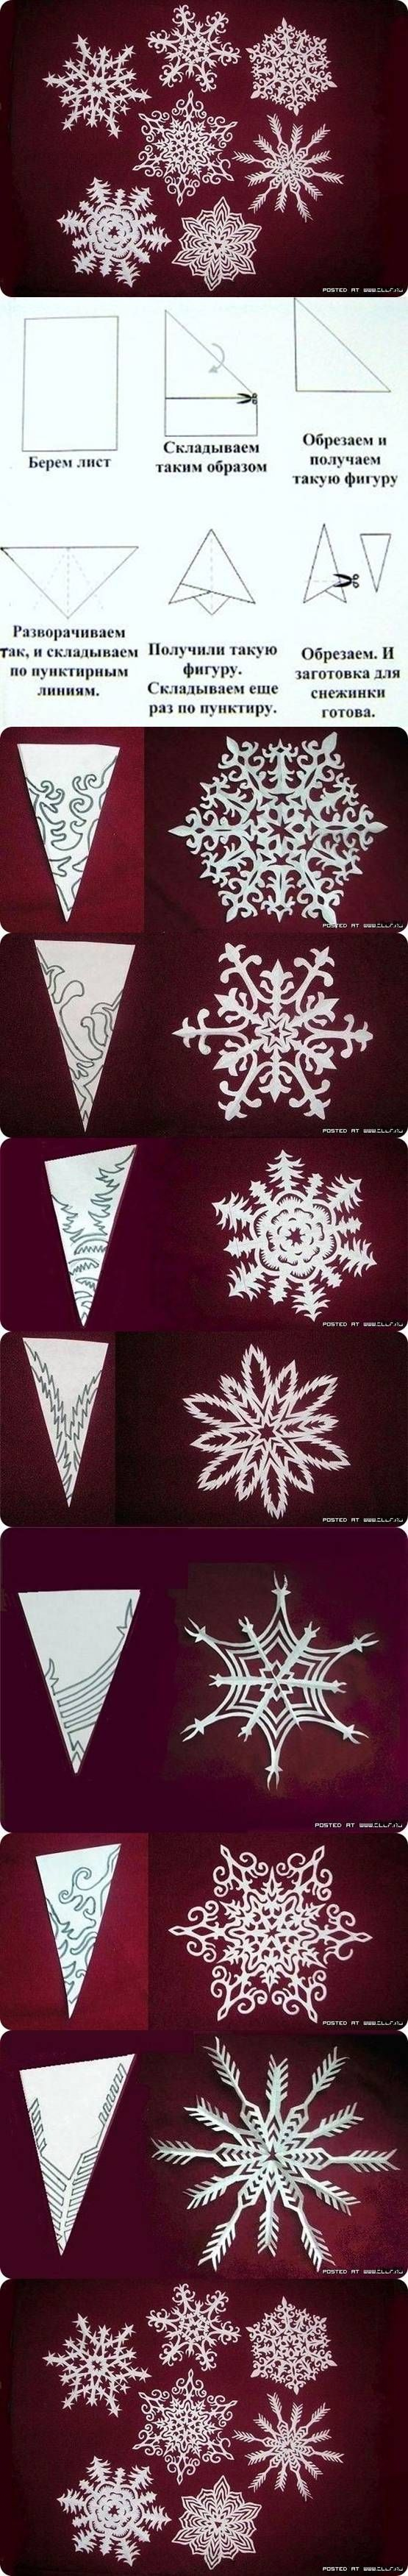 DIY Snowflakes of Paper